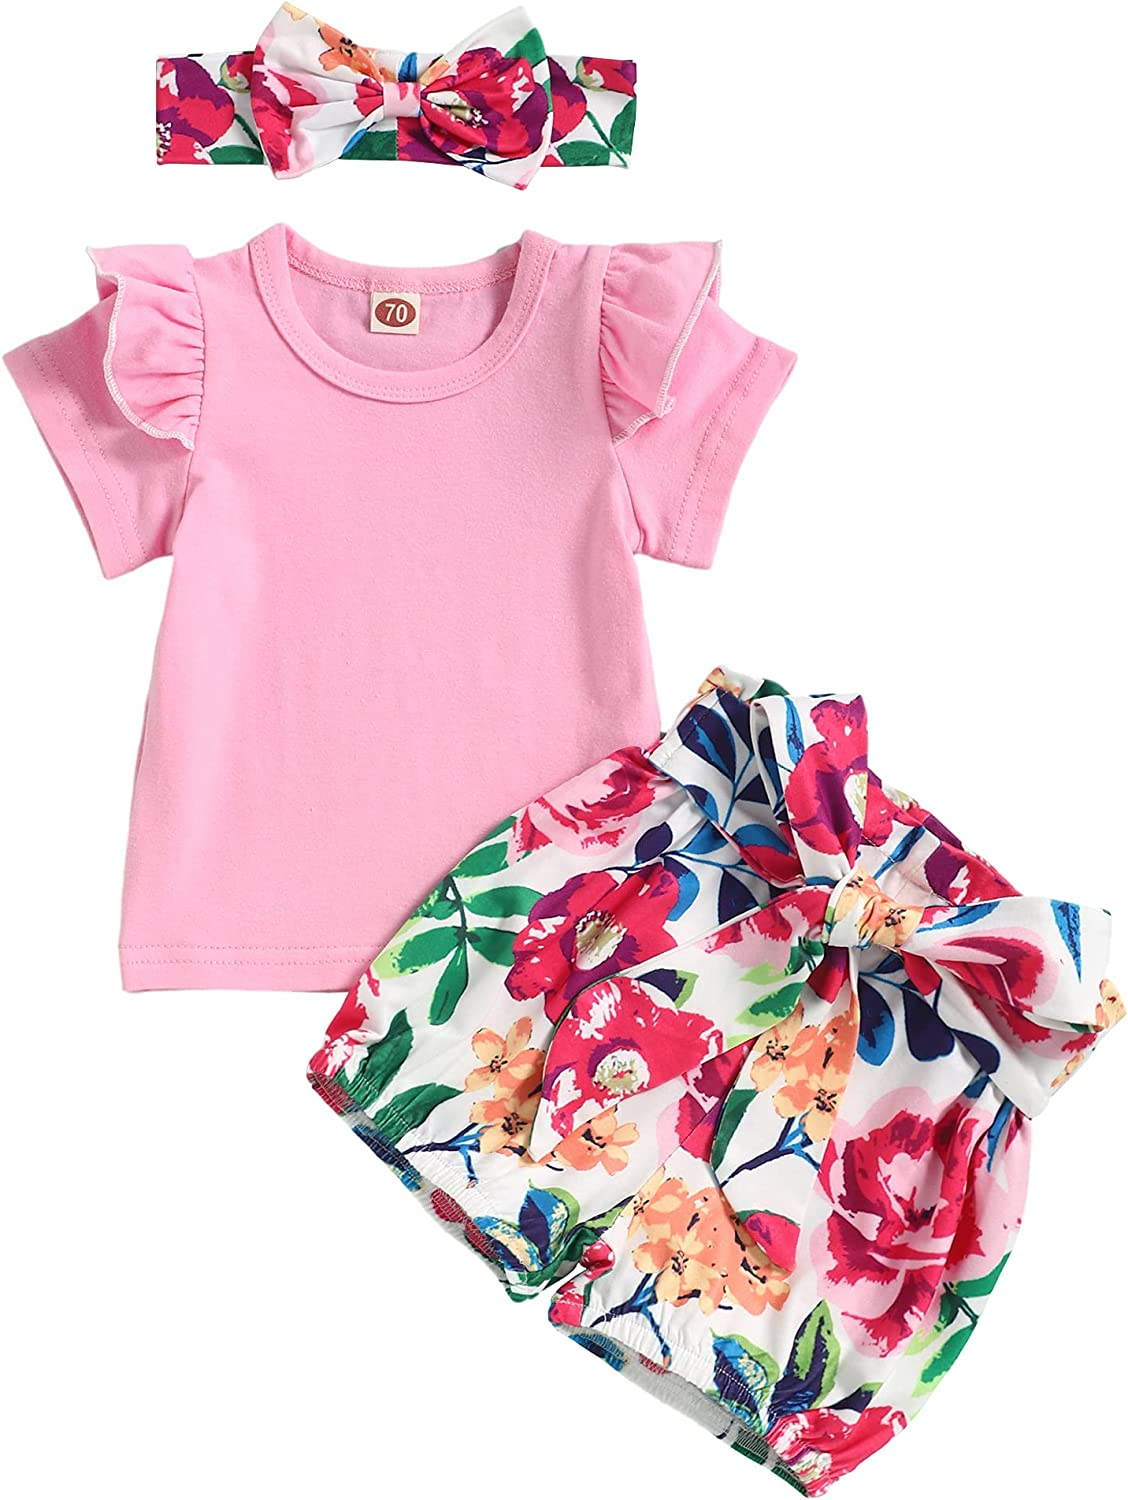 Newborn Baby Girl Summer Shorts Outfit Ruffle Sleeve Tops Floral Shorts with Headband Cute Infant Girl Clothes